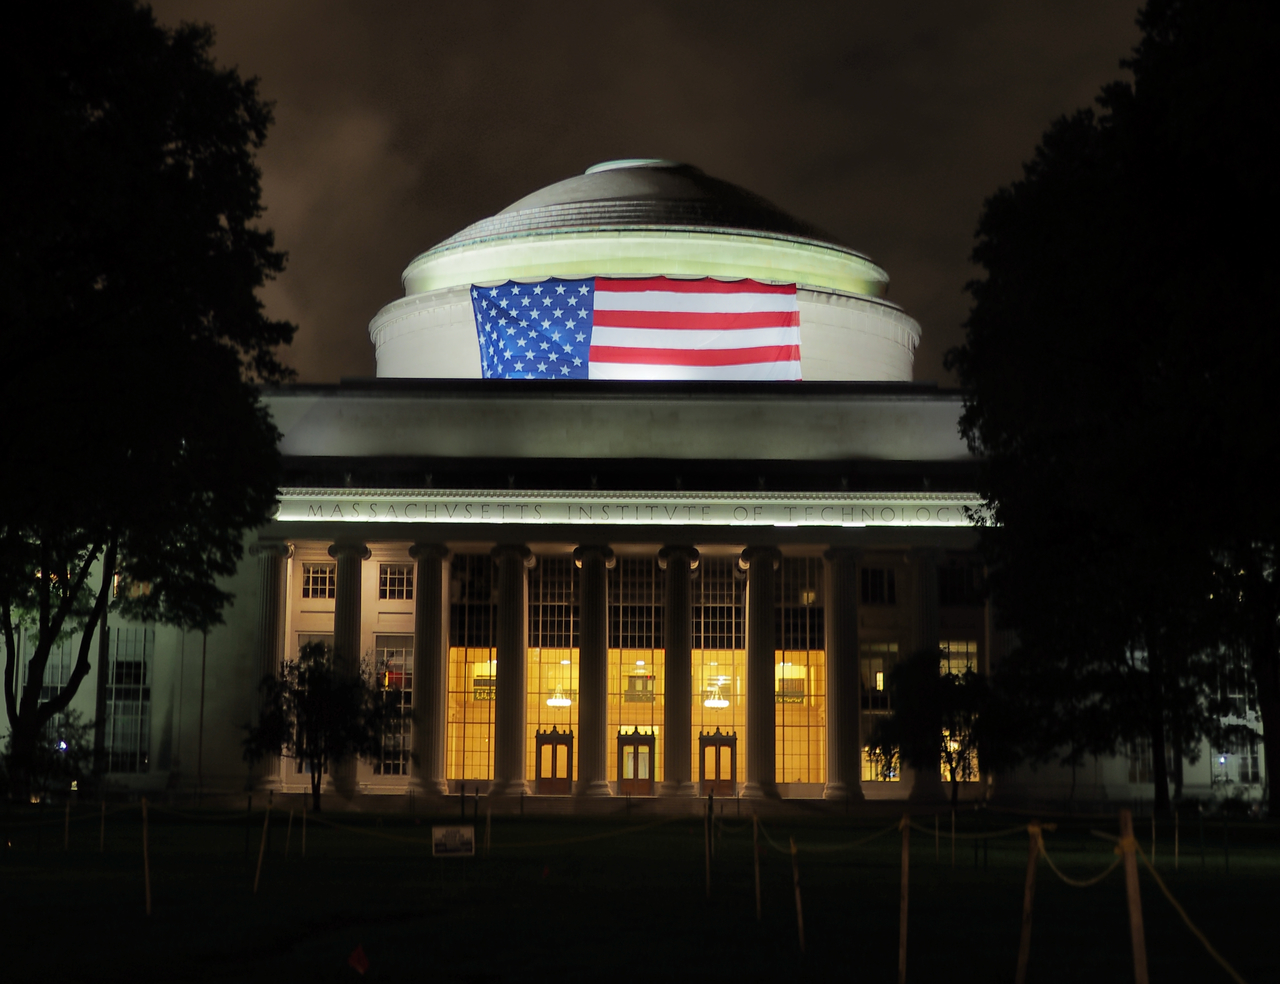 MIT Hack with US flag